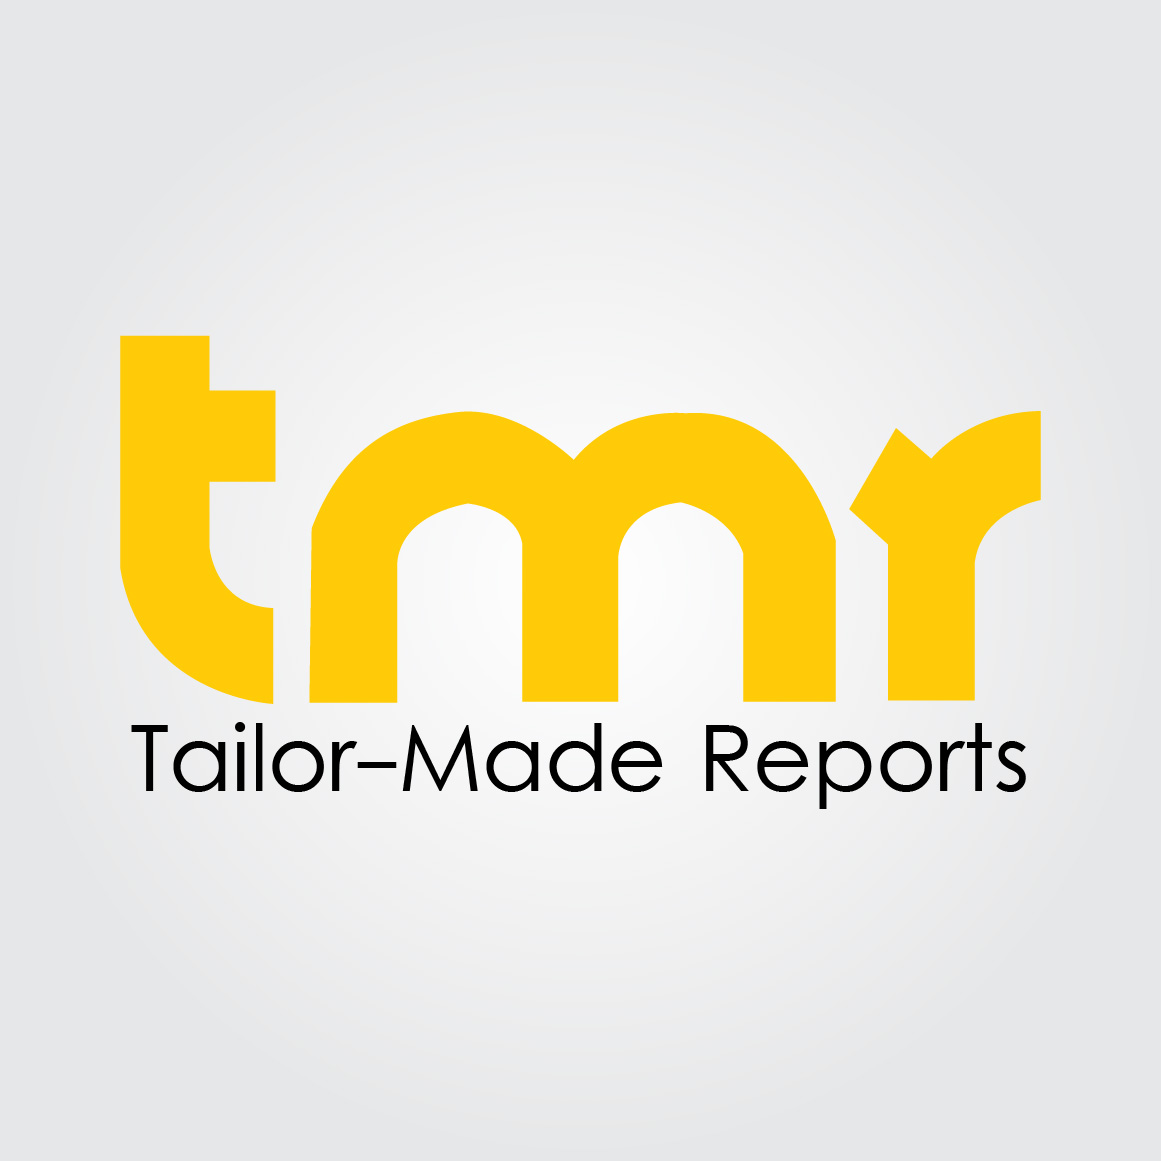 Electronic Design Automation Software Market | Exclusive Report on the Latest Trends and Growth Opportunities in the Market